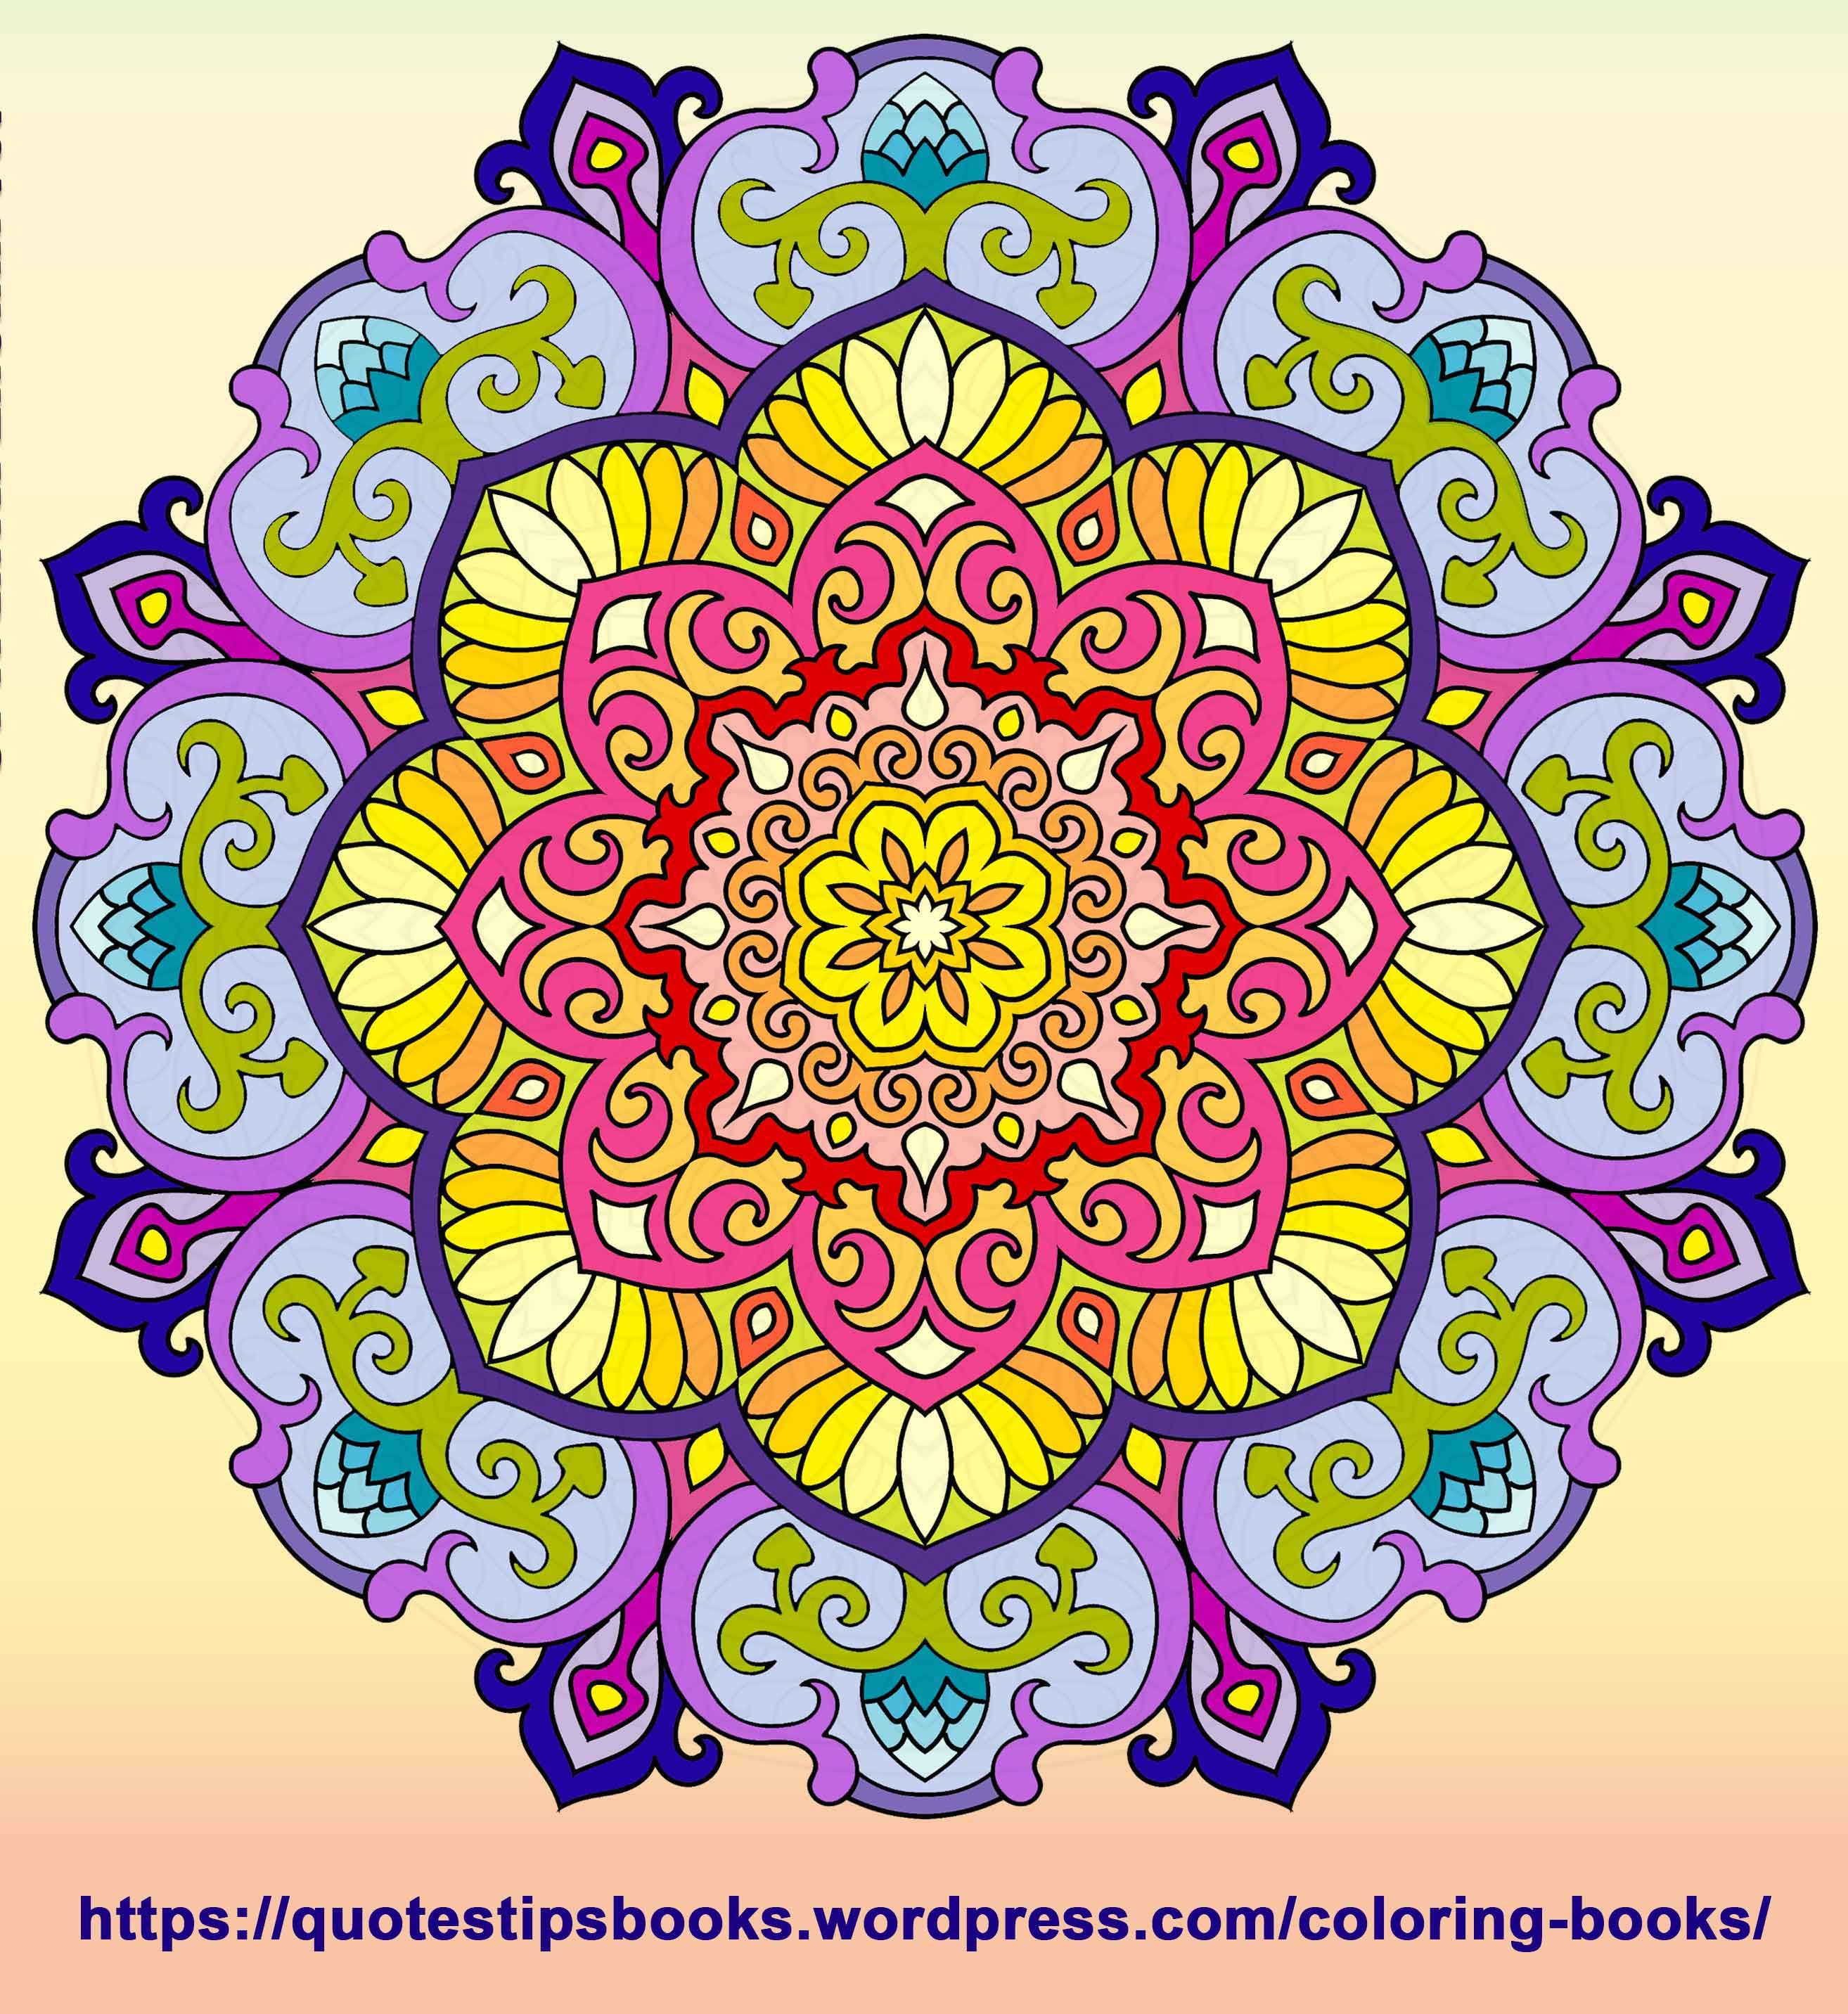 101 Unique Mandalas Mandala Coloring Books Mandala Design Art Mandala